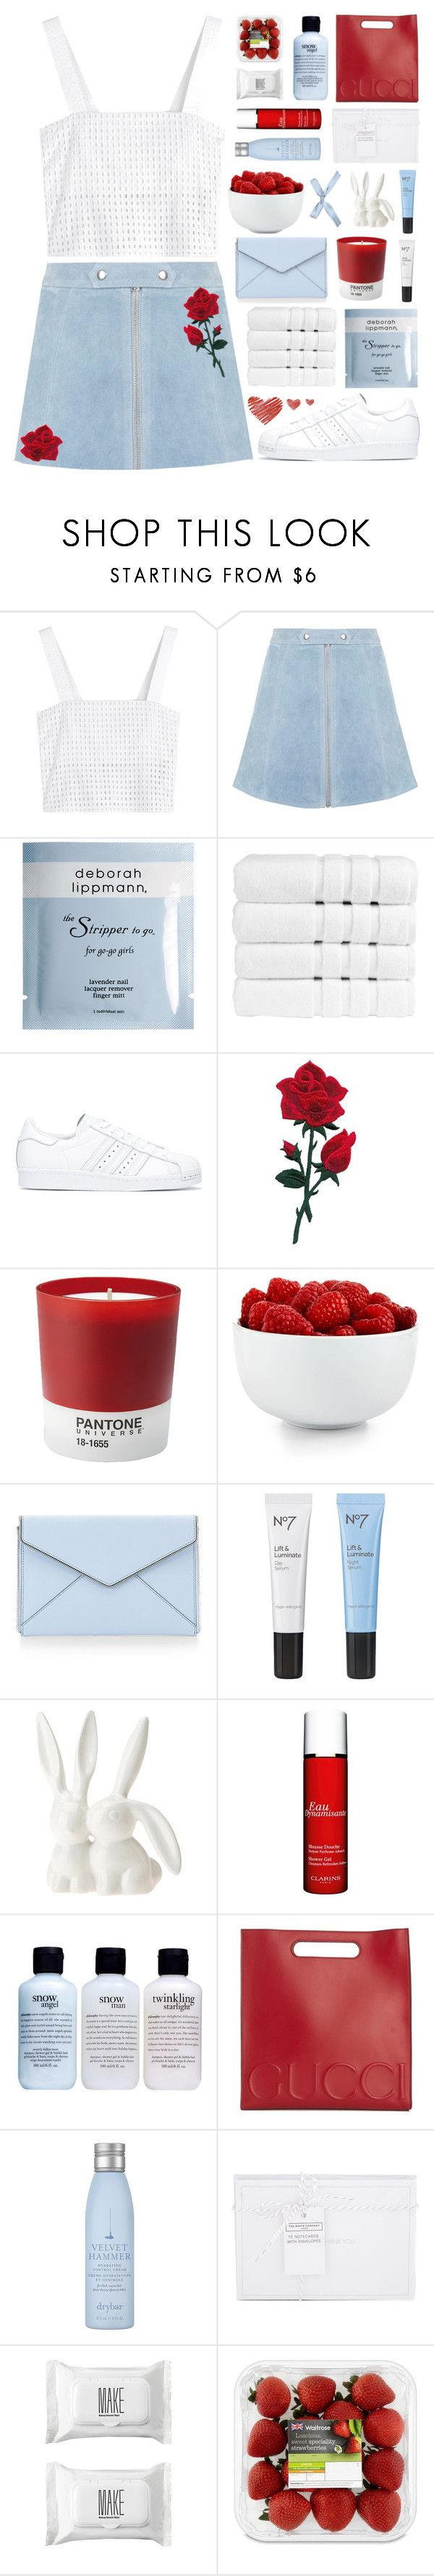 """no fancy covering, you get just what you see"" by enchantedmist ❤ liked on Polyvore featuring 3.1 Phillip Lim, Topshop, Deborah Lippmann, Christy, adidas, Pantone, The Cellar, Rebecca Minkoff, Boots No7 and Urban Outfitters"